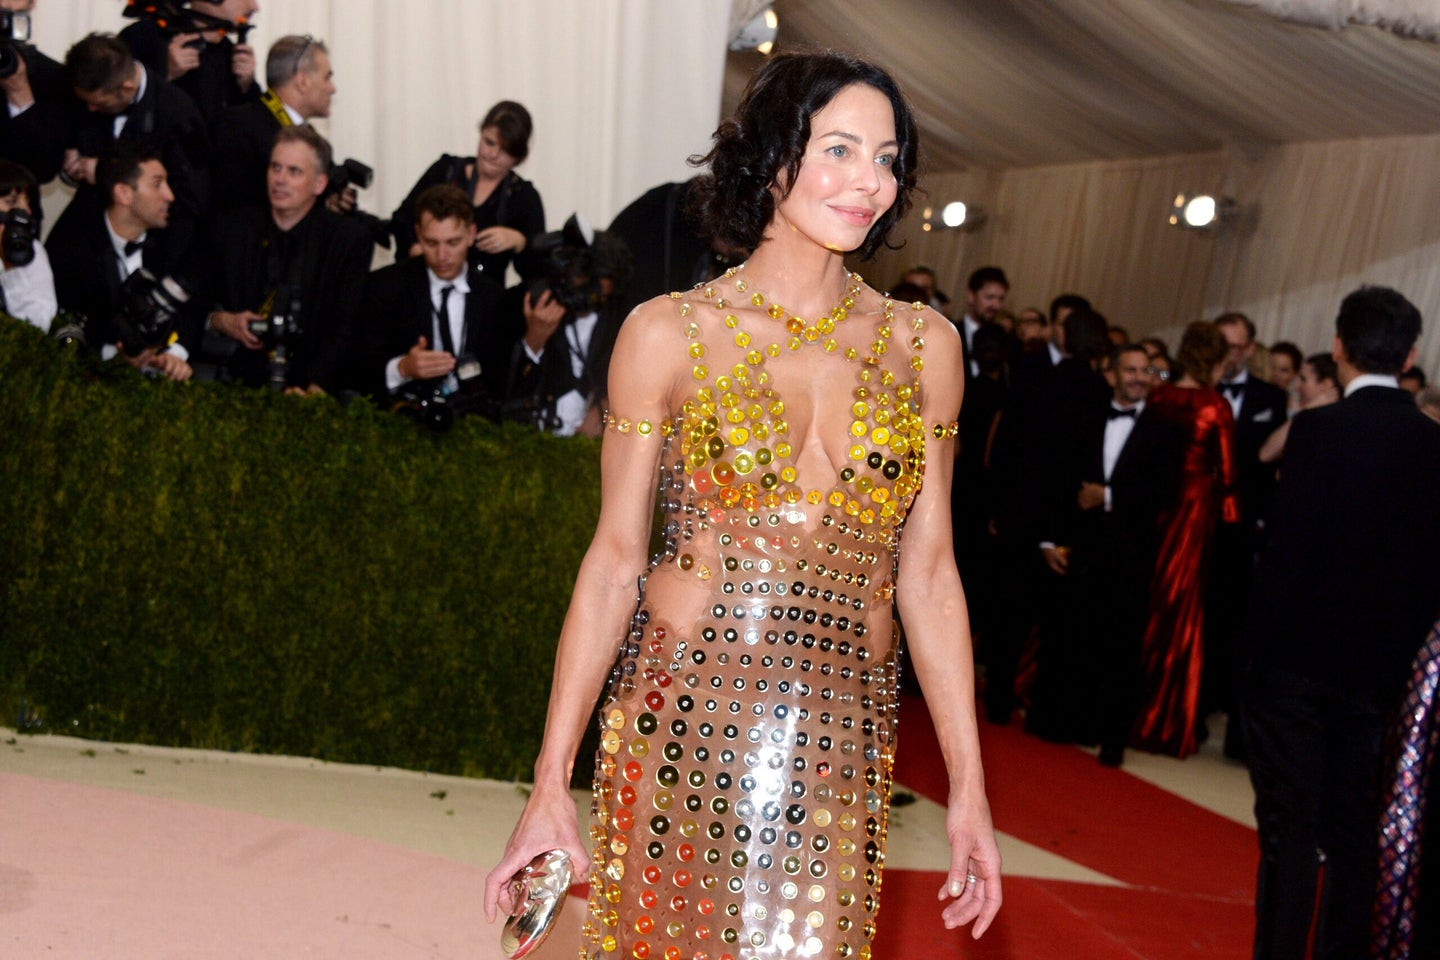 A.I. Made This Dress With 'Too Much Side Boob' For The Met Gala